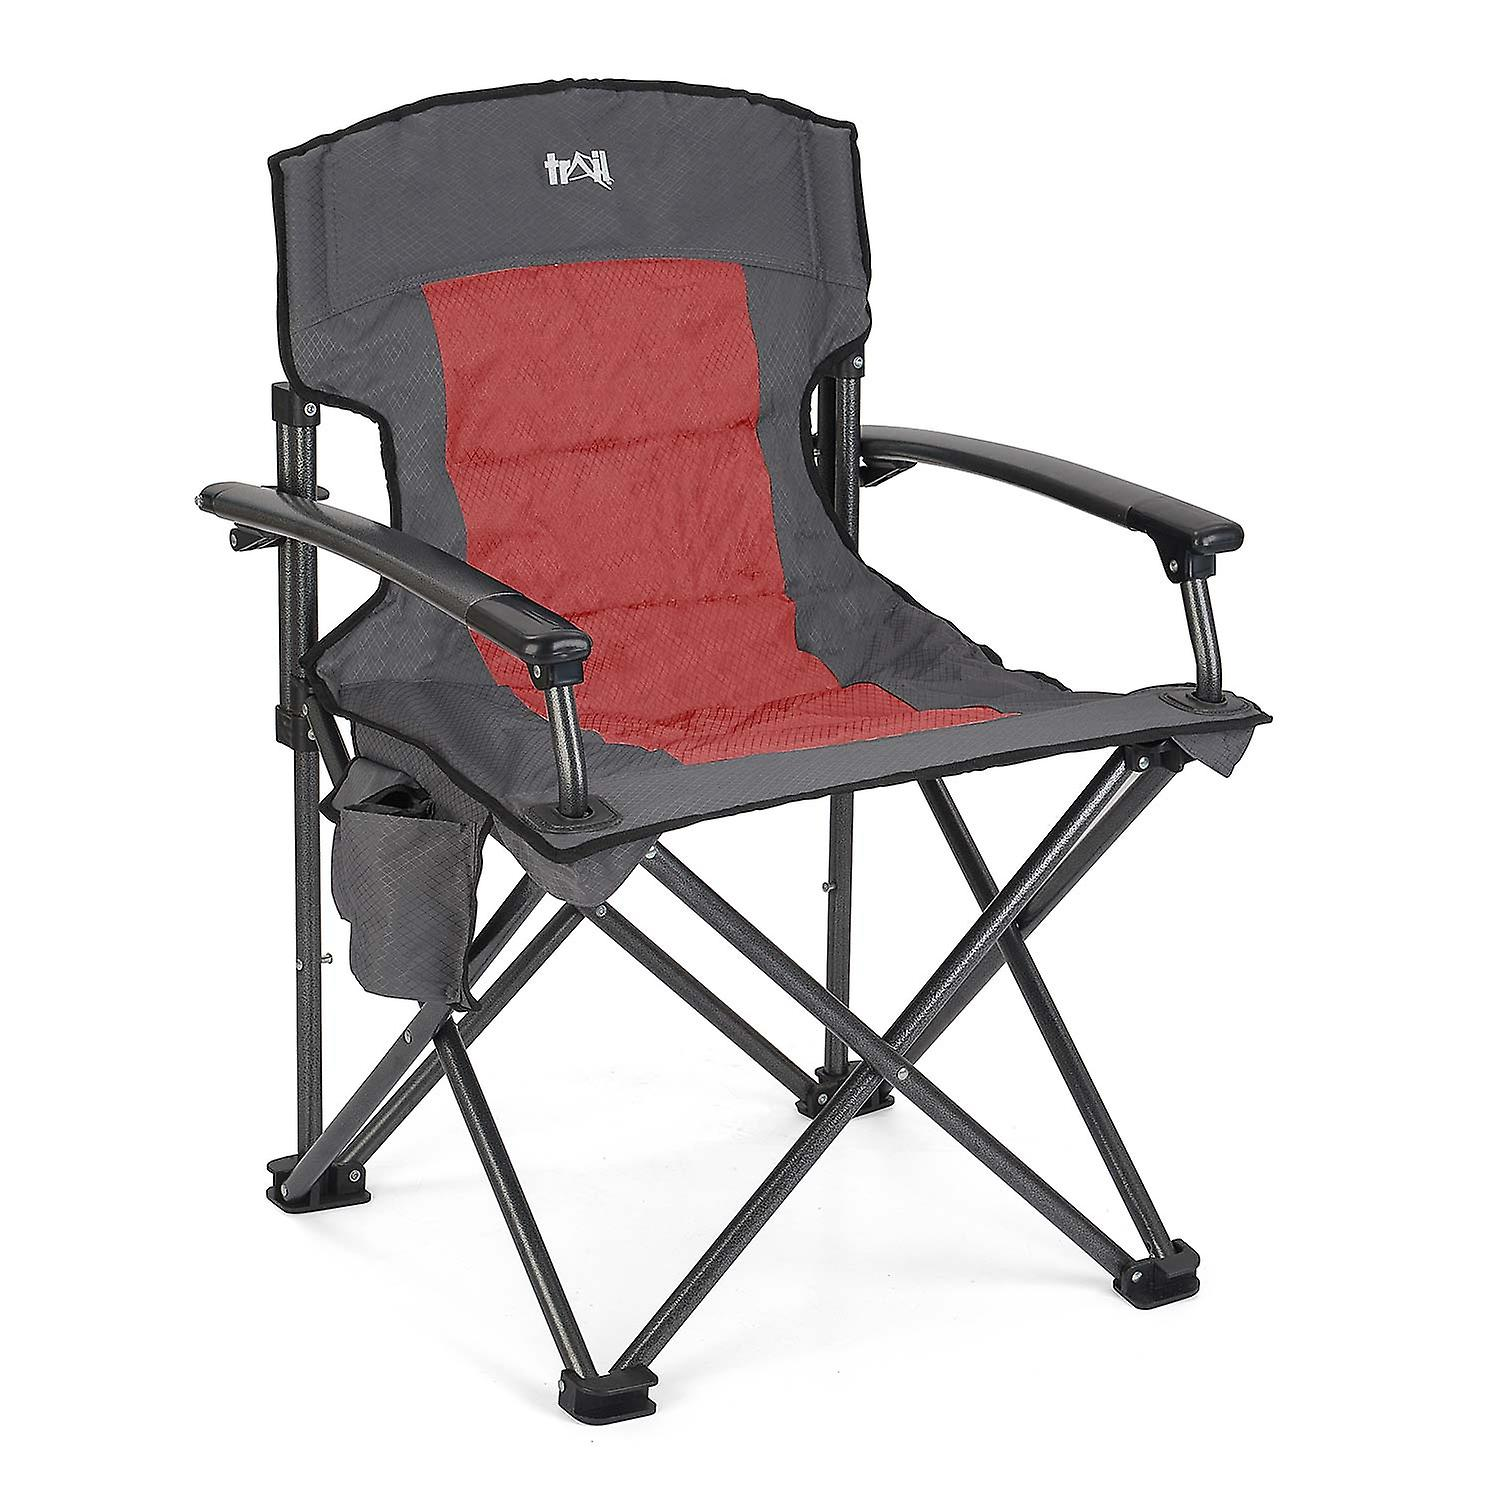 Double Camping Chair Folding Camping Chair Lightweight Portable Luxury Double Padded Festival Fishing